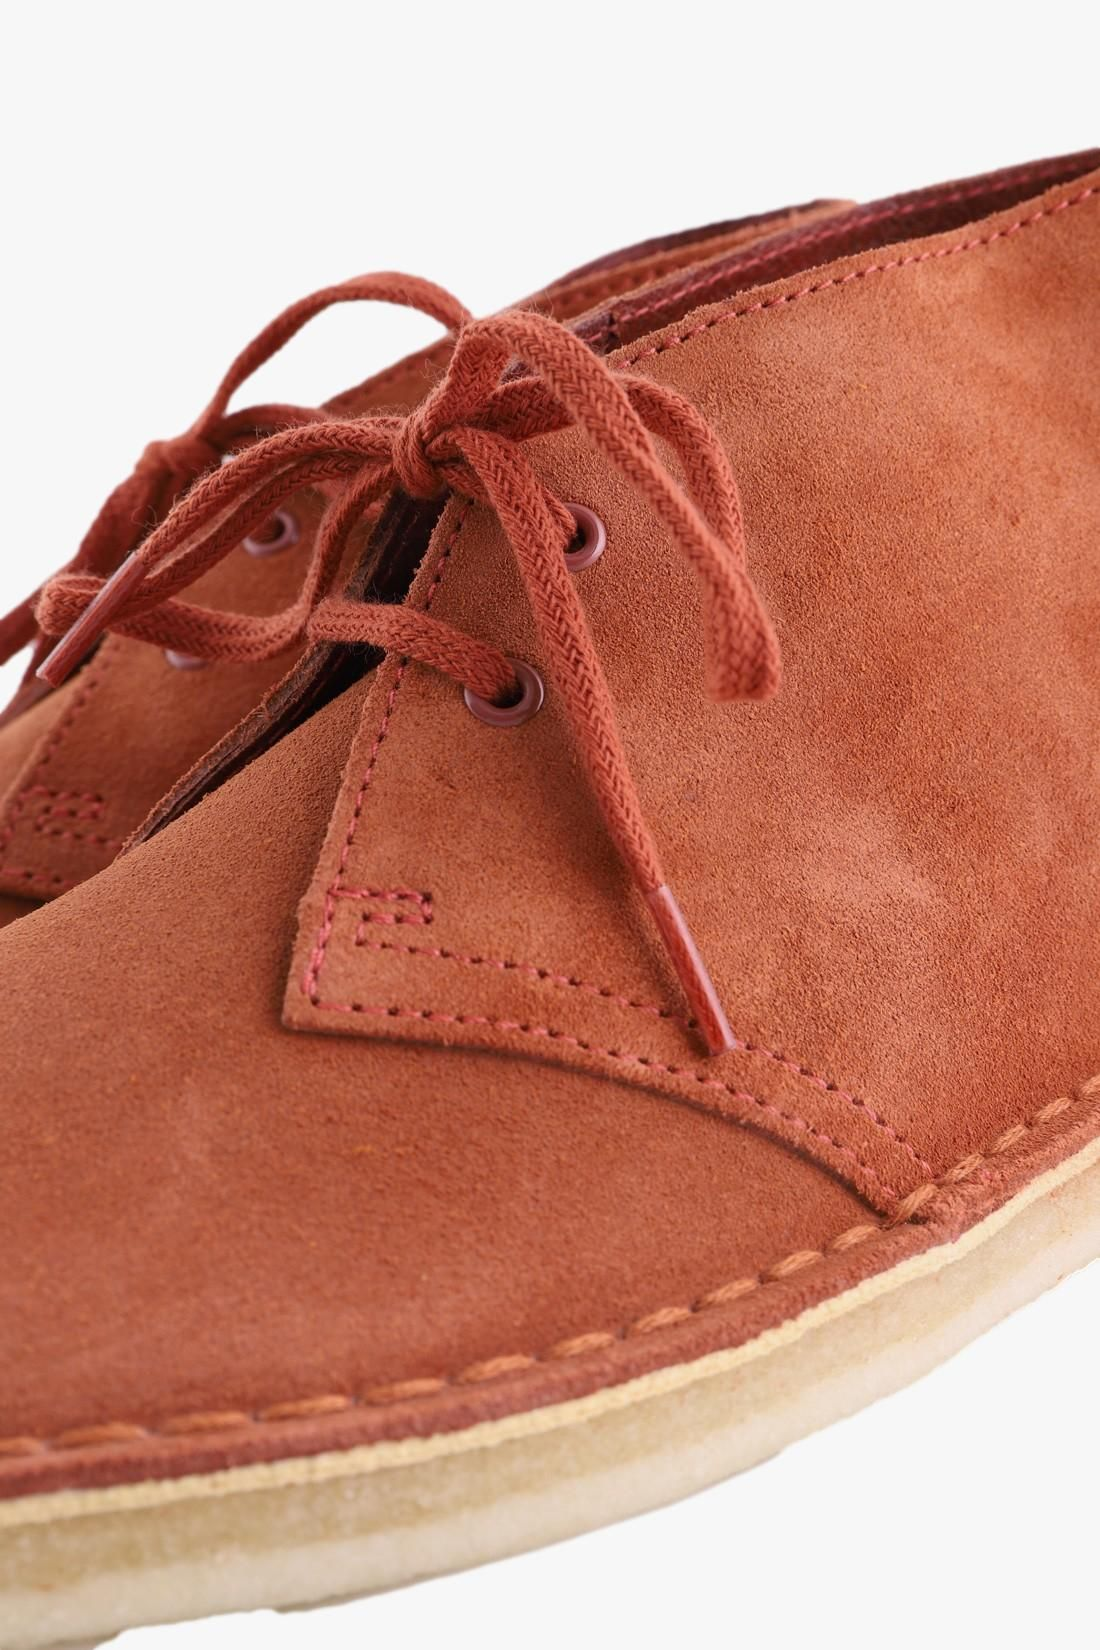 CLARKS ORIGINALS FOR WOMAN / Desert boot uk Brick suede